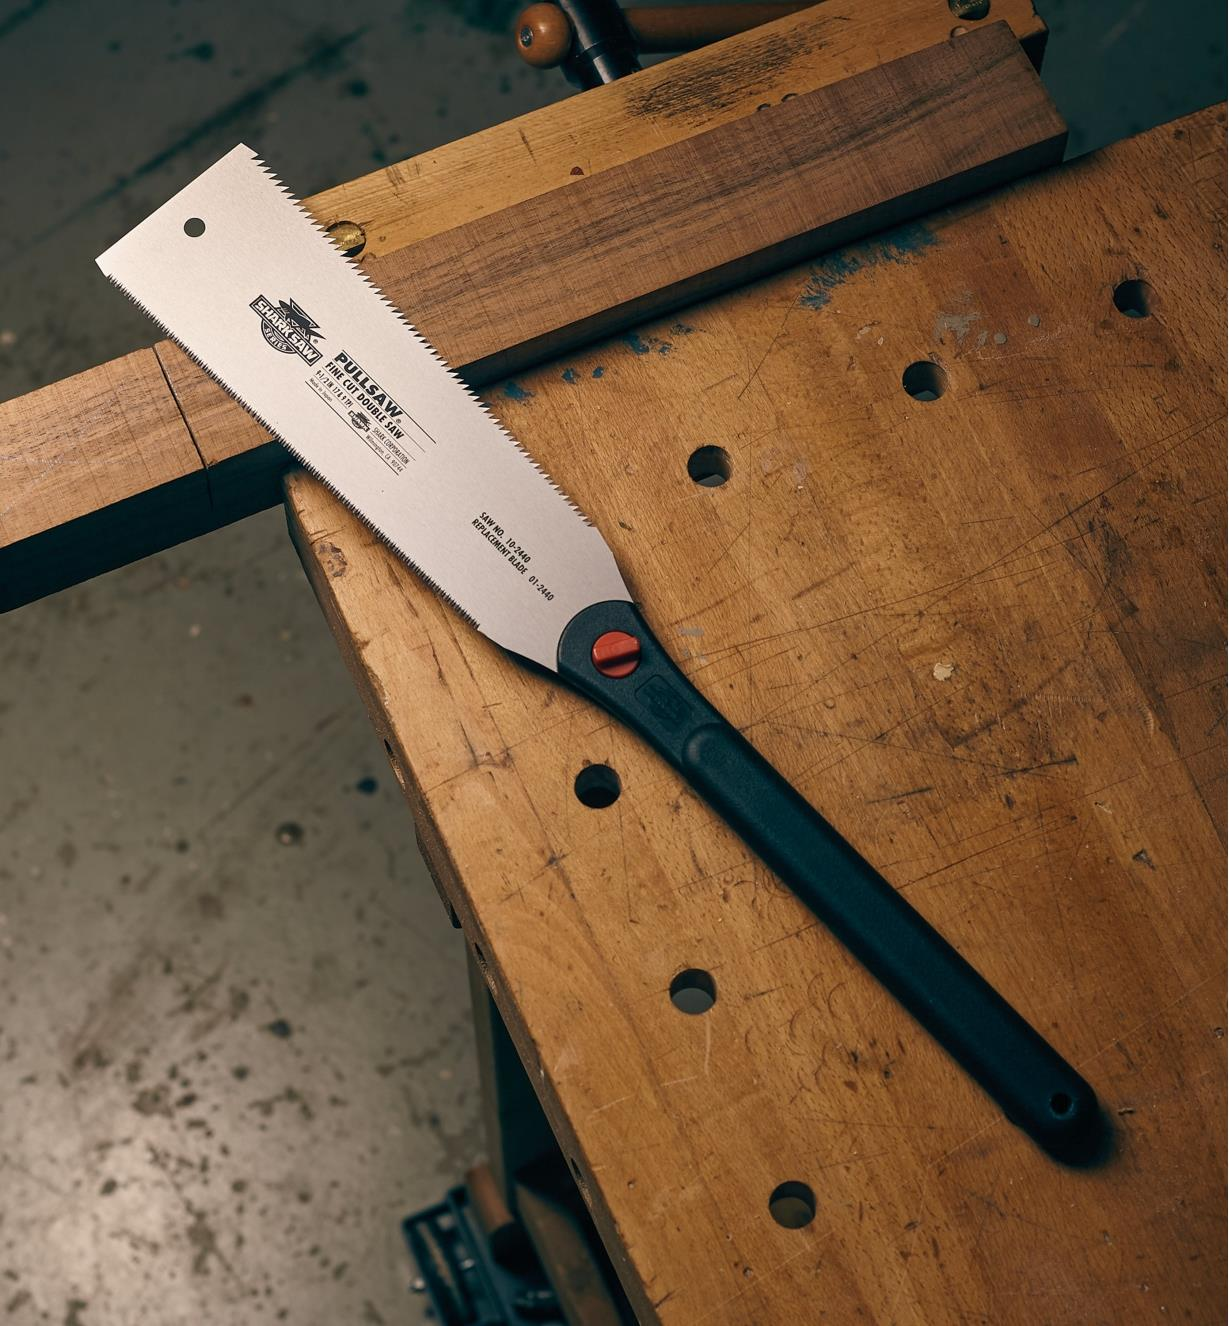 Side view of a Japanese modern ryoba saw lying on a workbench